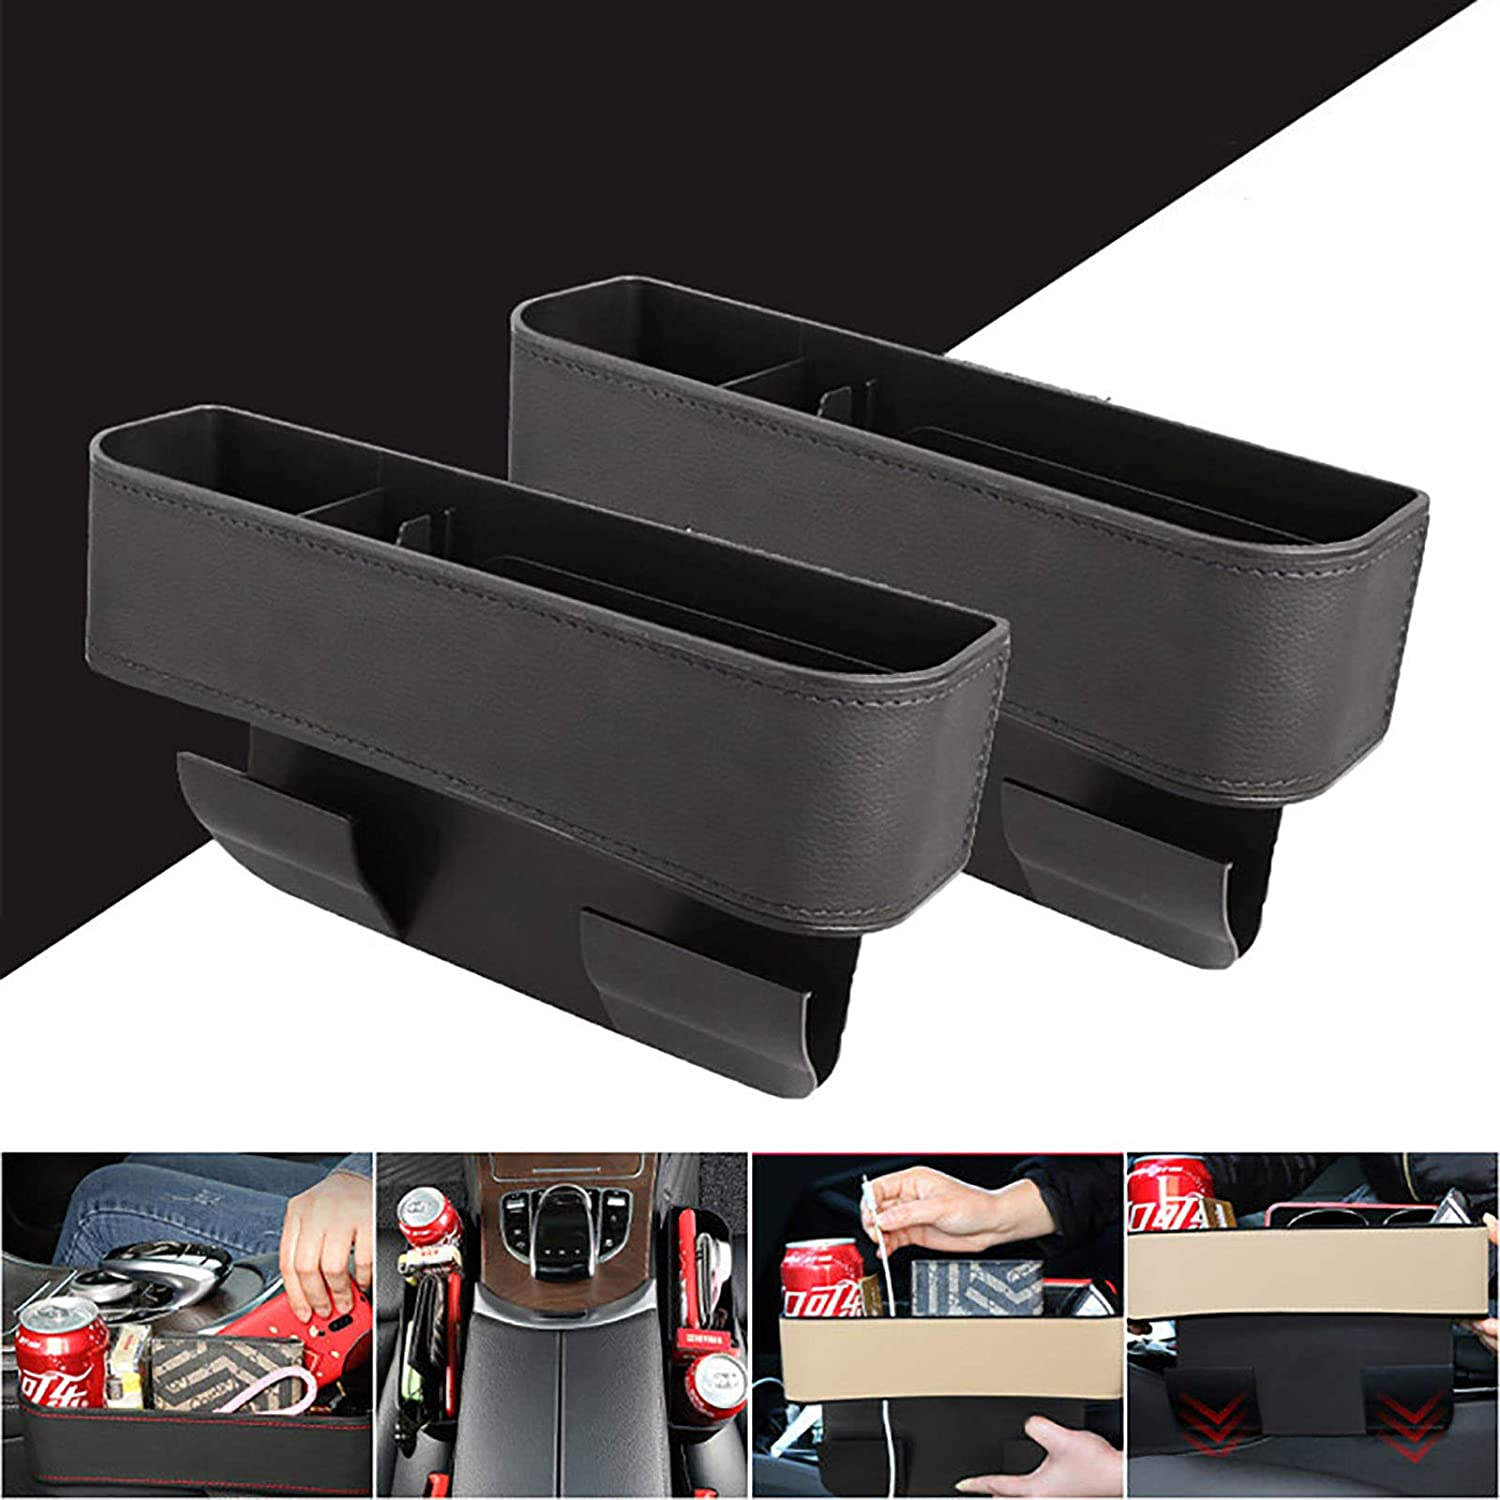 Sunglasses Beige Cards Wallets Keys N\ Car Seat Storage Box,Car Seat Filler,Car Cup Holder Storage Box in Between Car Seat for Cellphones